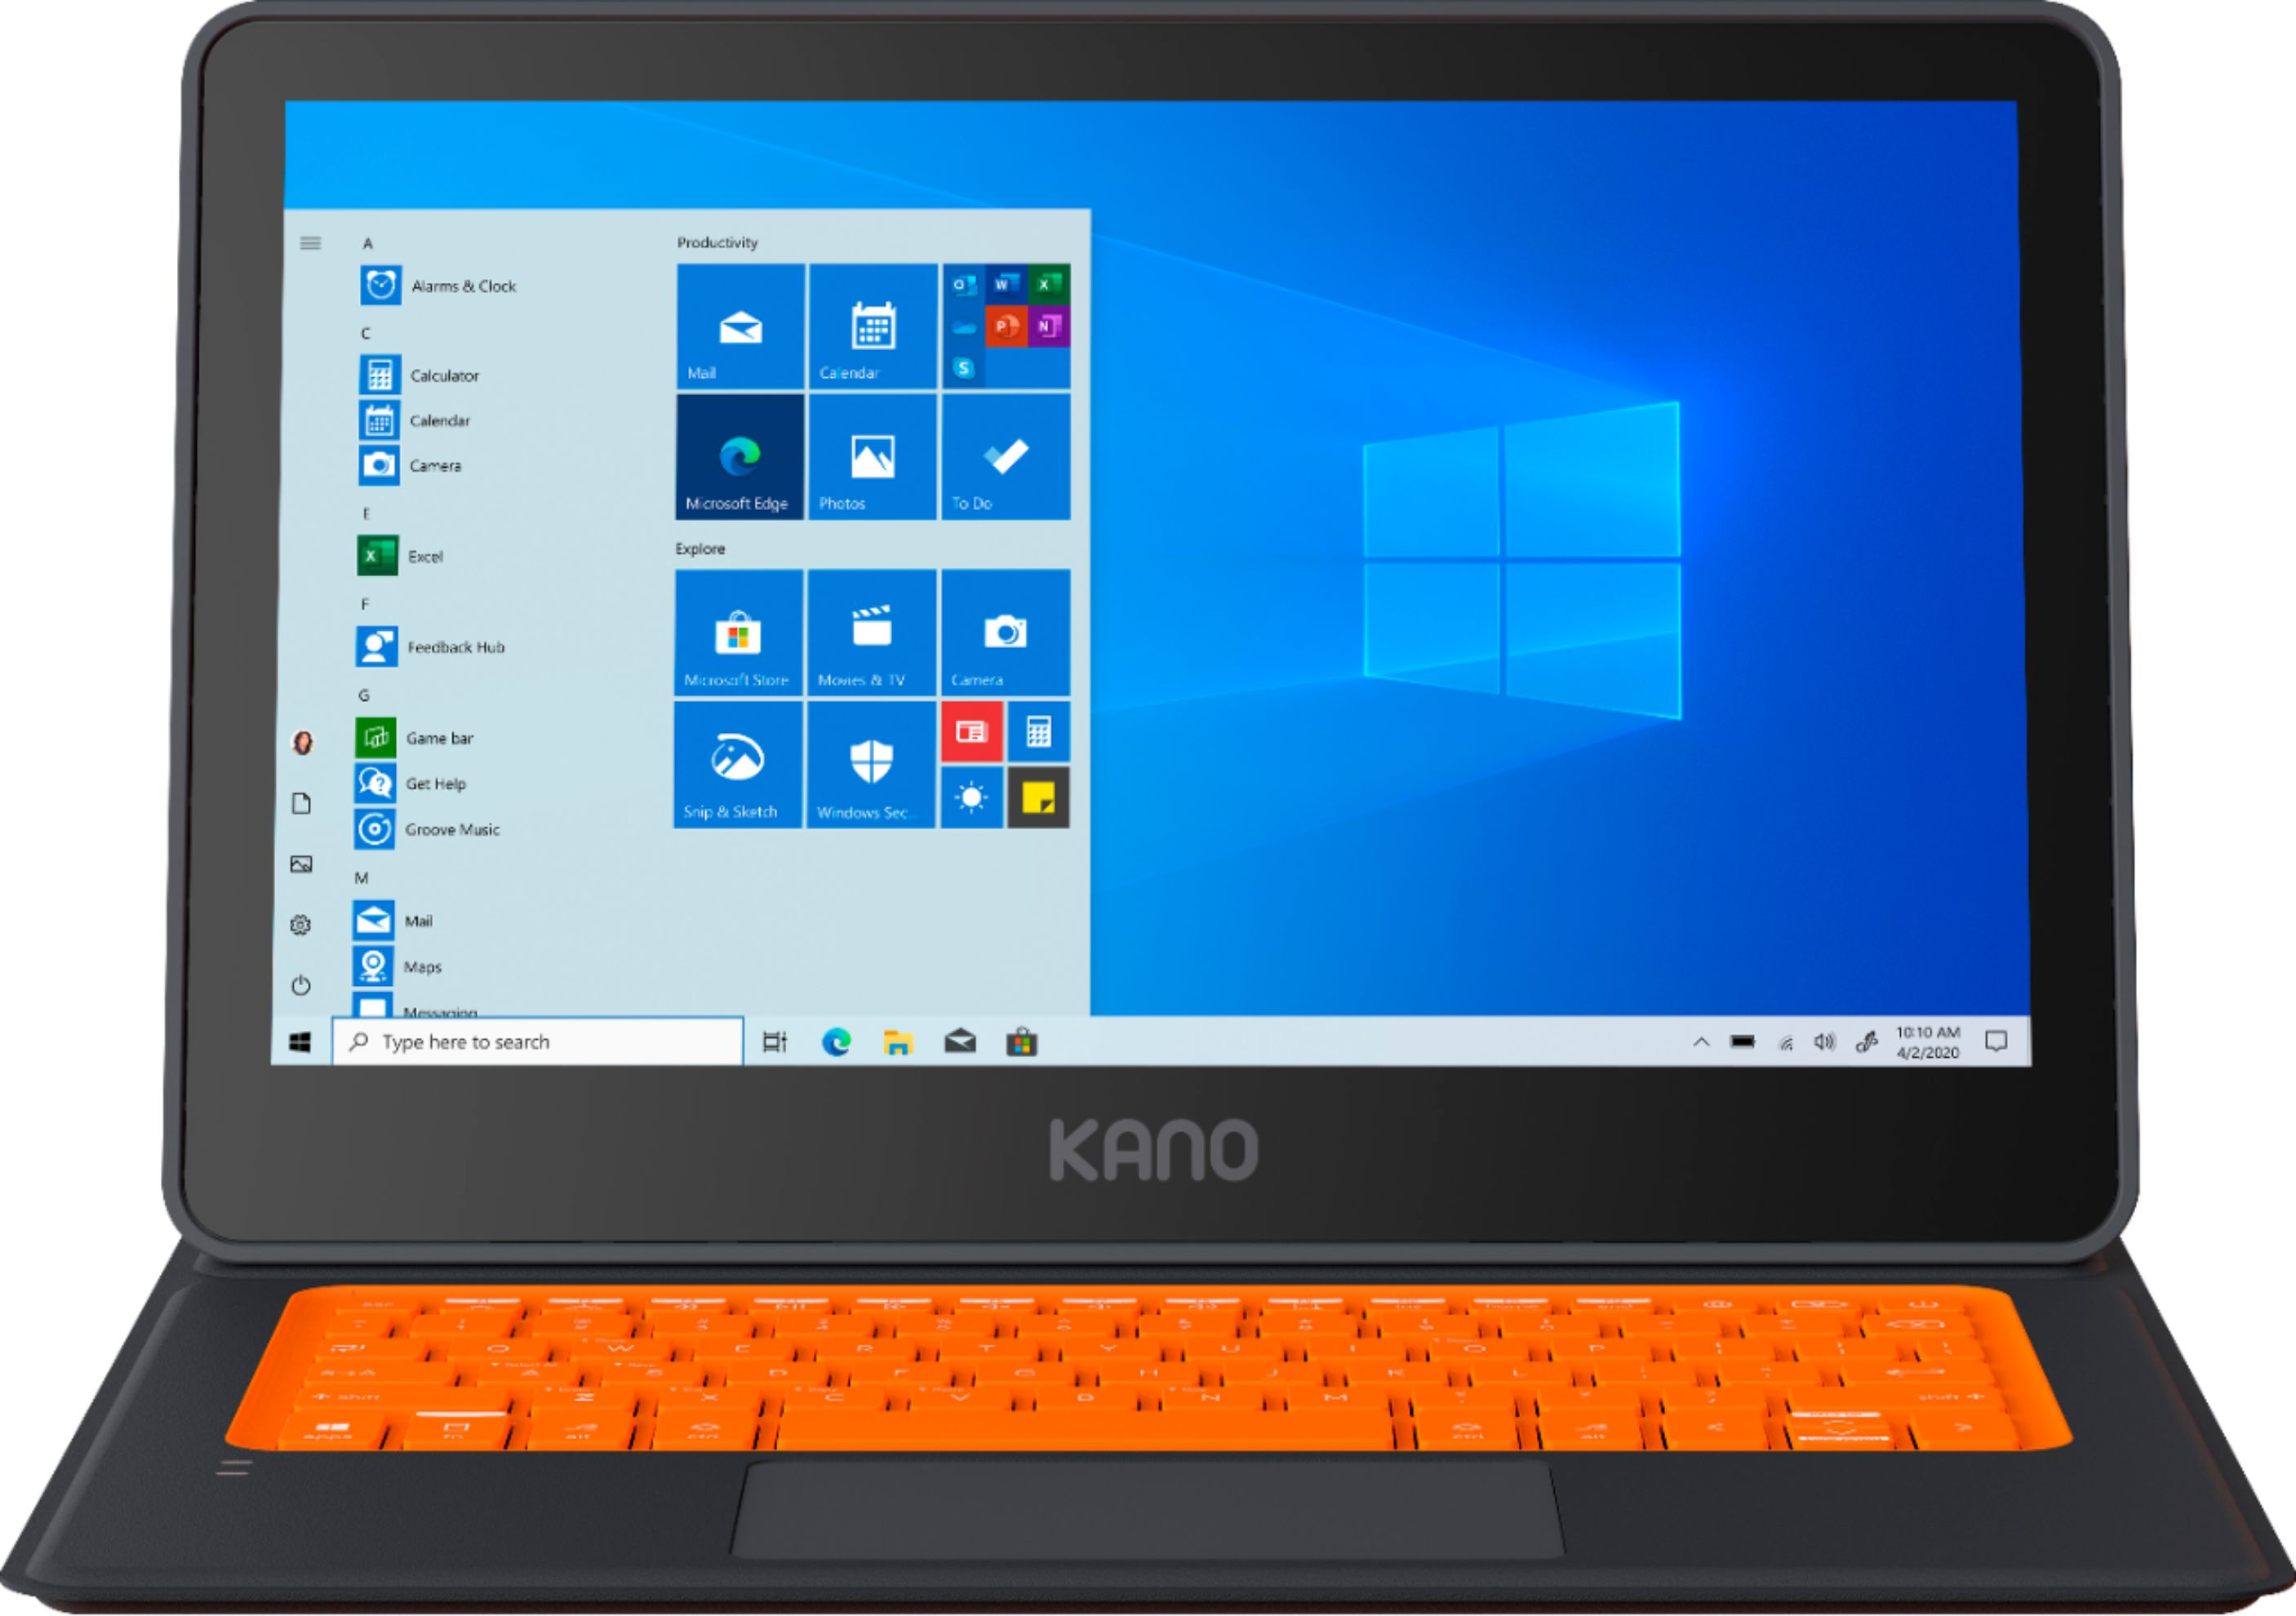 """Angle Zoom. Kano PC - 11.6"""" Kids Touch-Screen Laptop & Tablet - 1.10 GhZ Processor - Windows 10 - 4GB Memory - 64GB Storage - Black."""